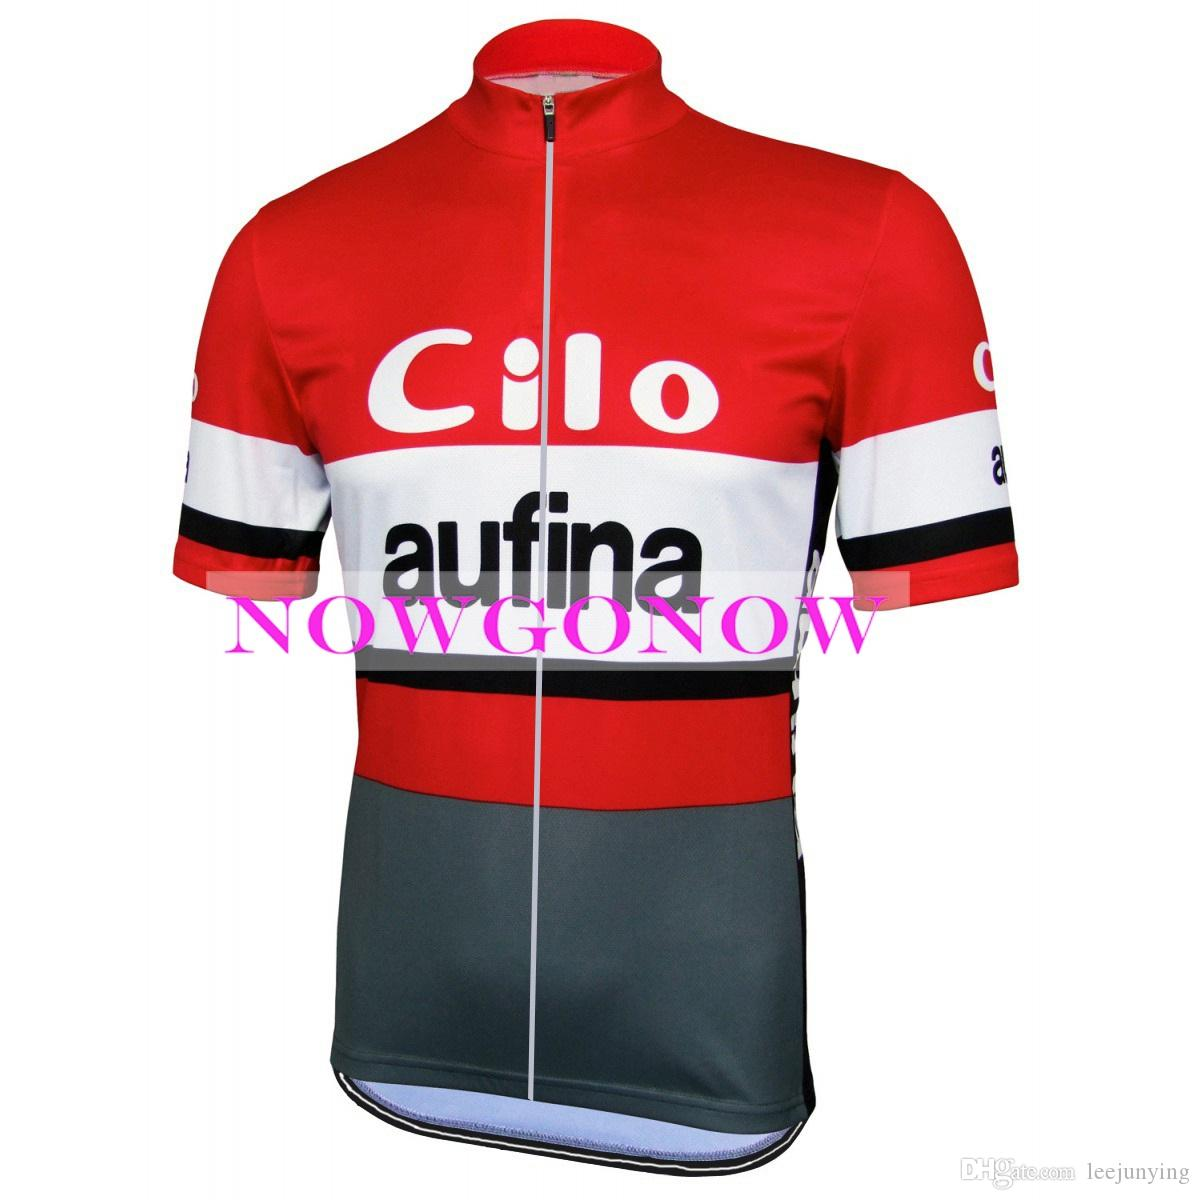 2016 cycling jersey cilo Classic style team bike clothing wear riding MTB road ropa ciclismo NOWGONOW bicyce full zip Polyester funny cool